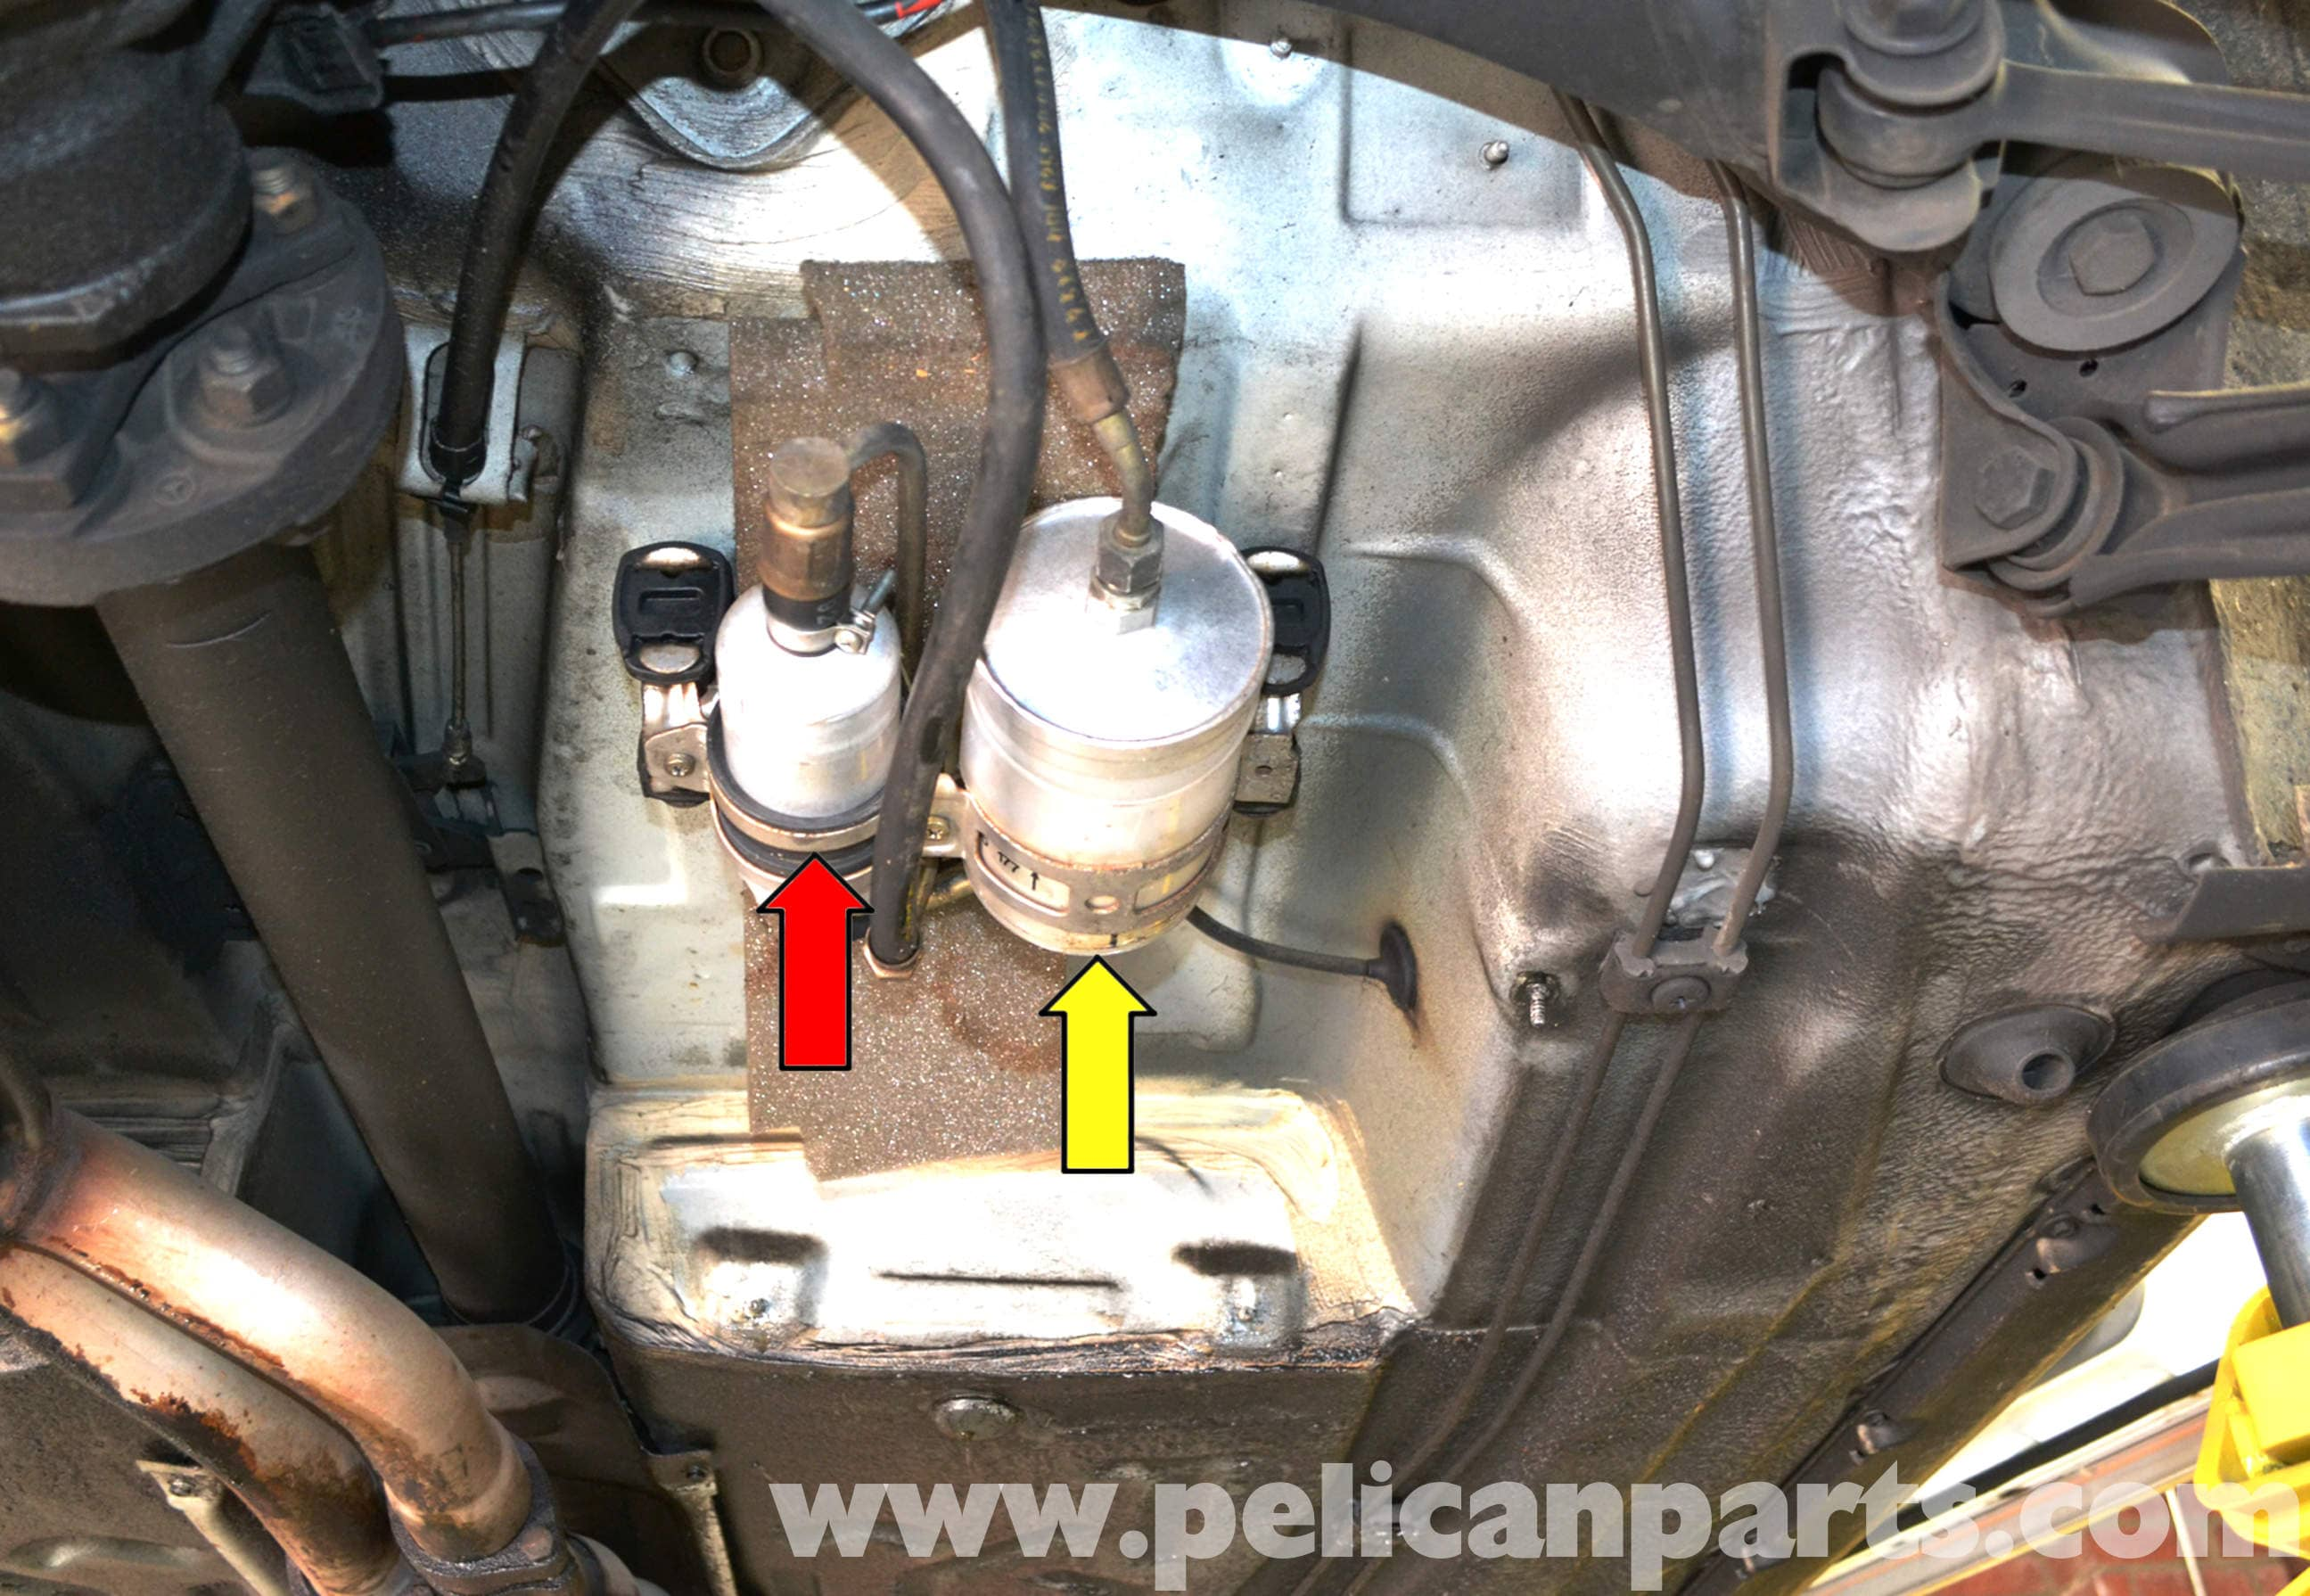 Mercedes Benz W124 Fuel Filter Replacement 1986 1995 E Class Dirty On Truck Large Image Extra